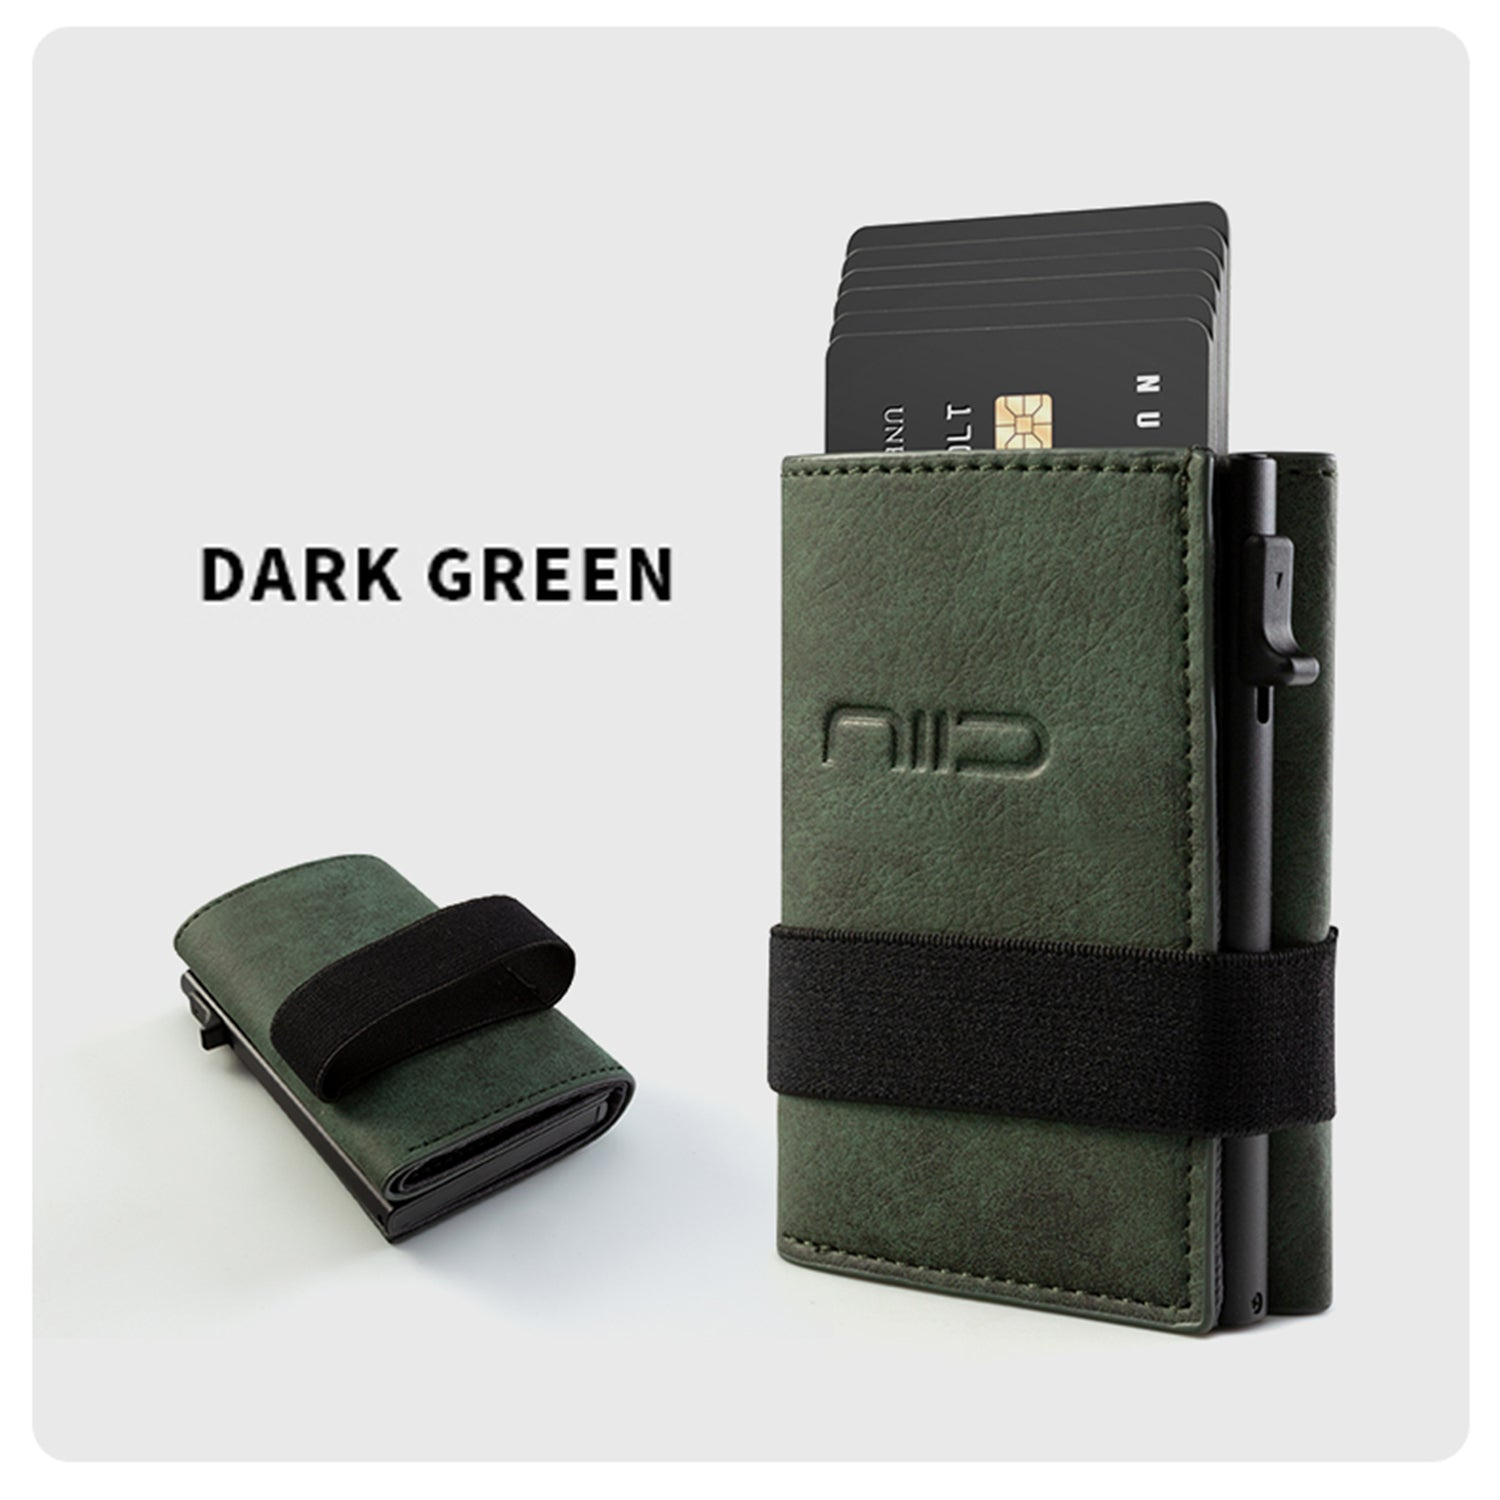 NIID Slide II Vegan Leather Mini Wallet Dark Green